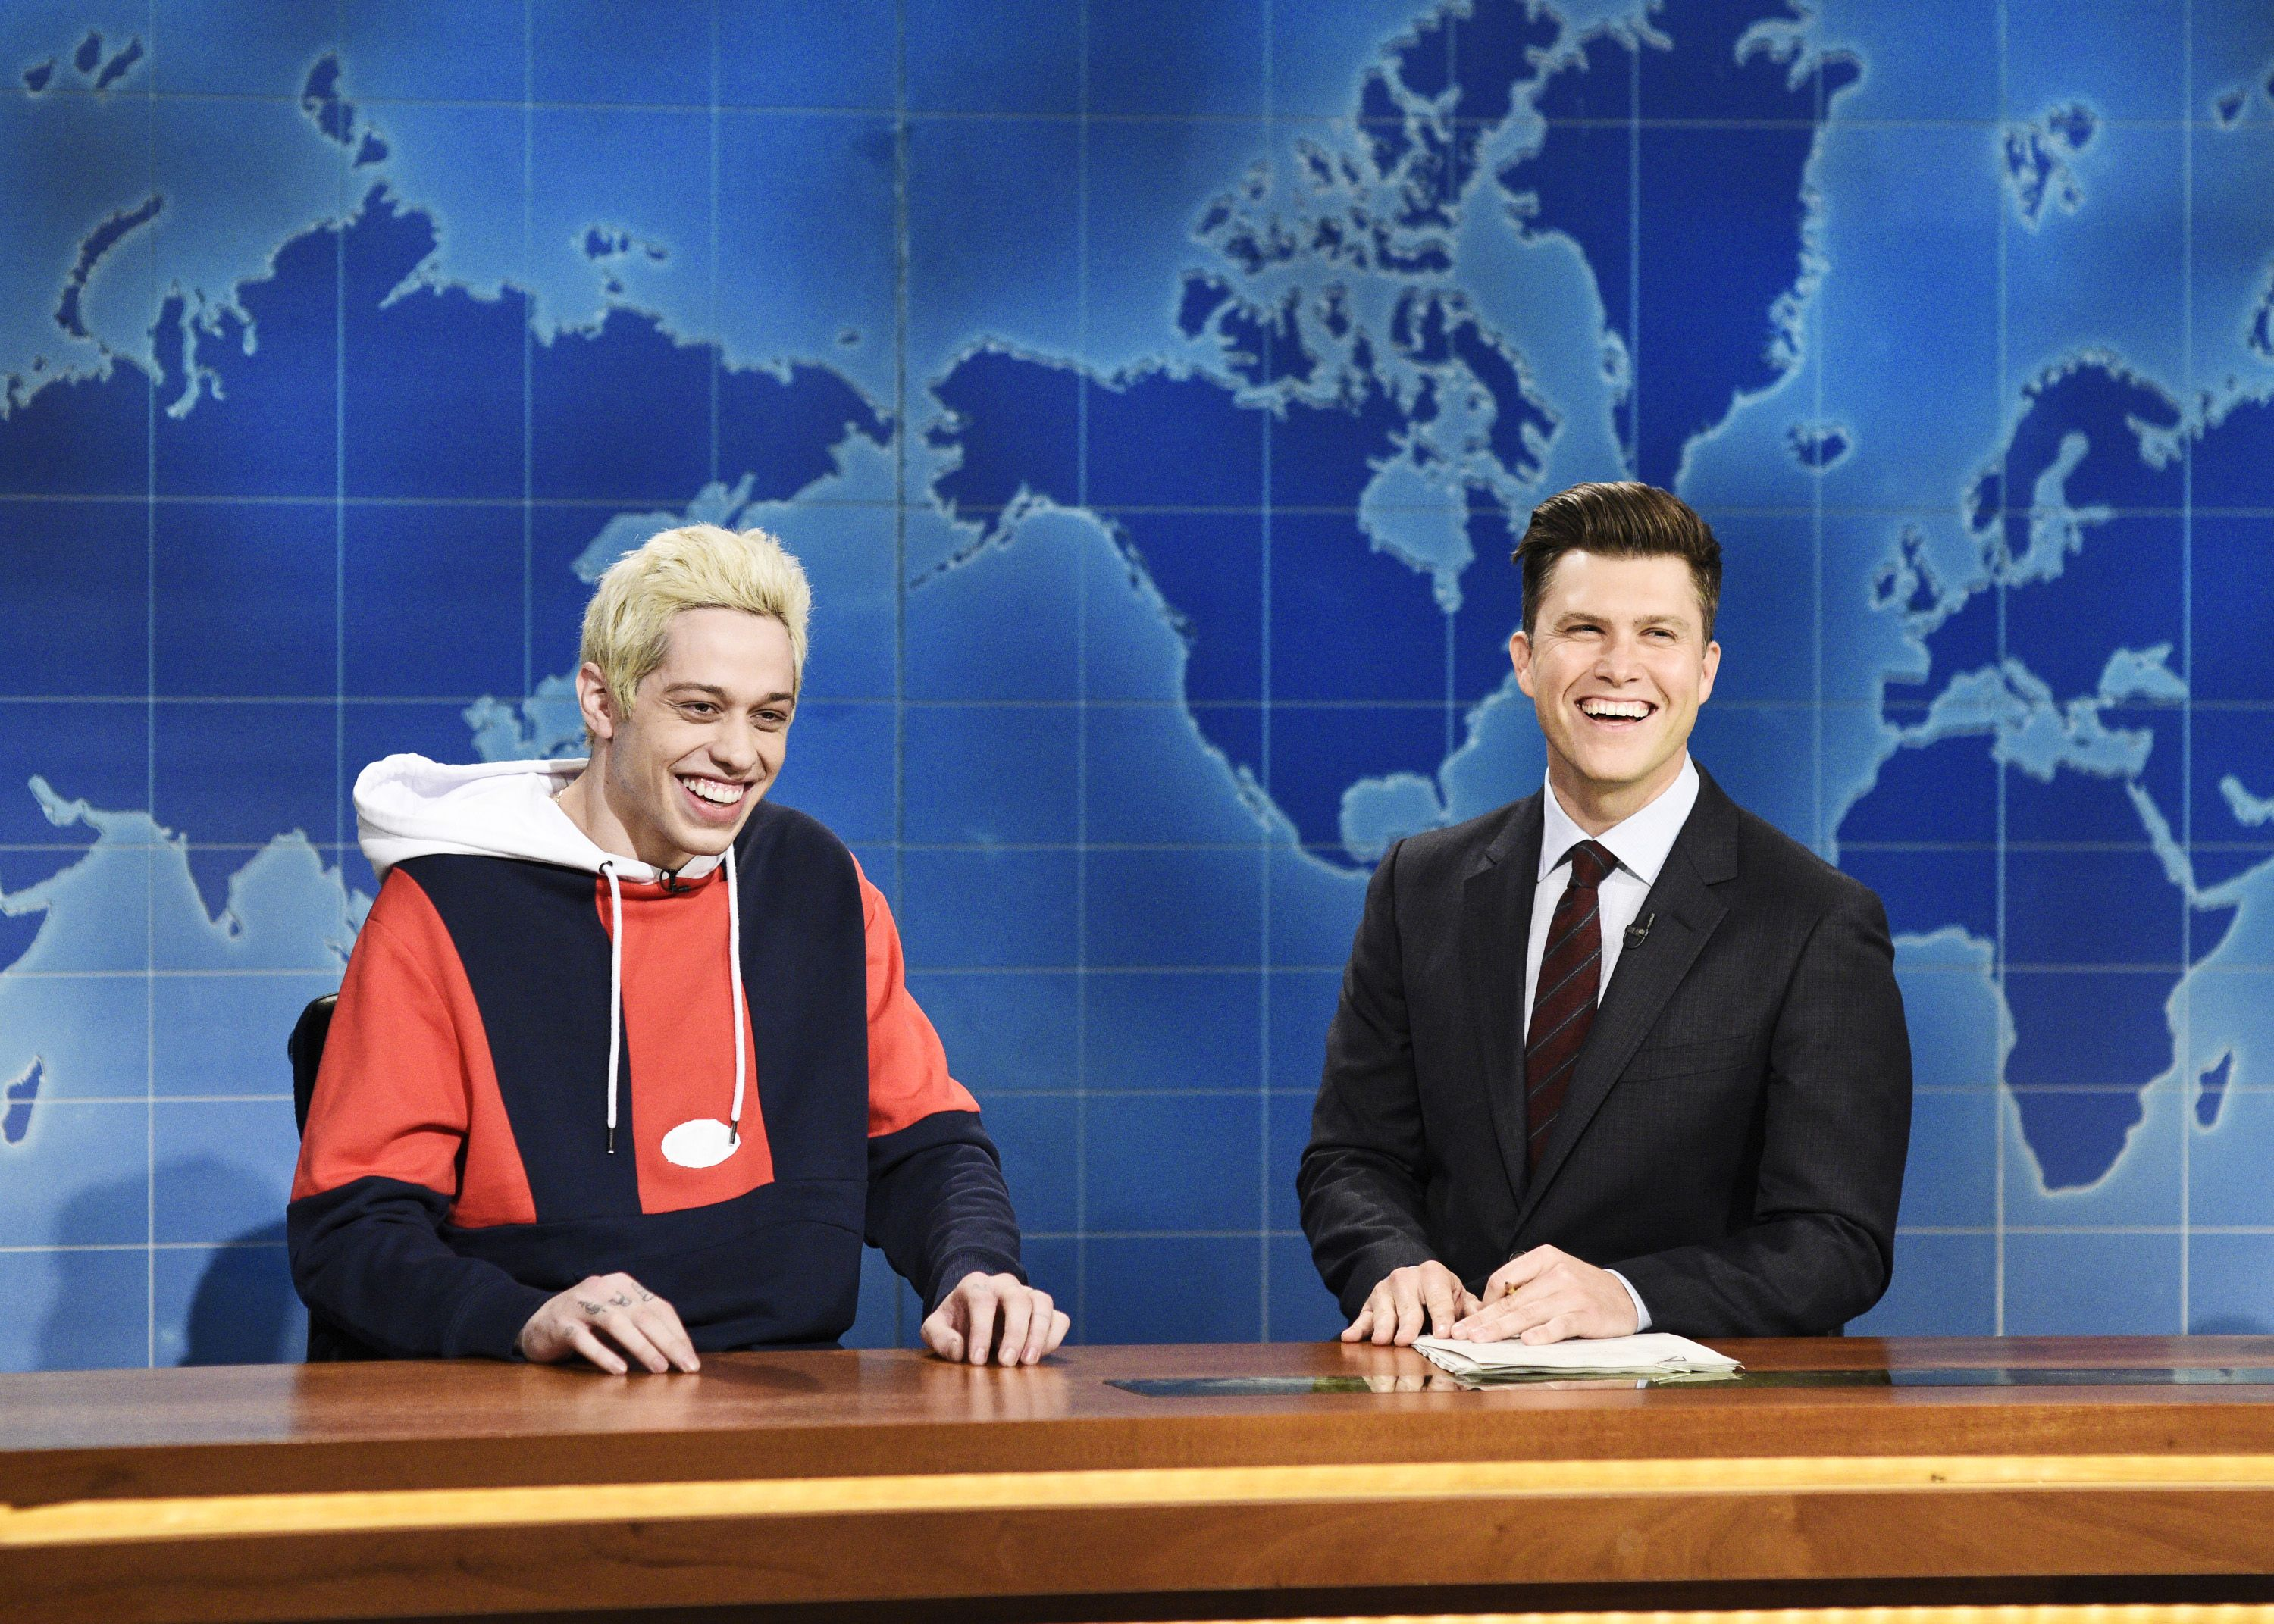 Why Pete Davidson Decided to Cut His Ariana Grande Breakup SNL Sketch